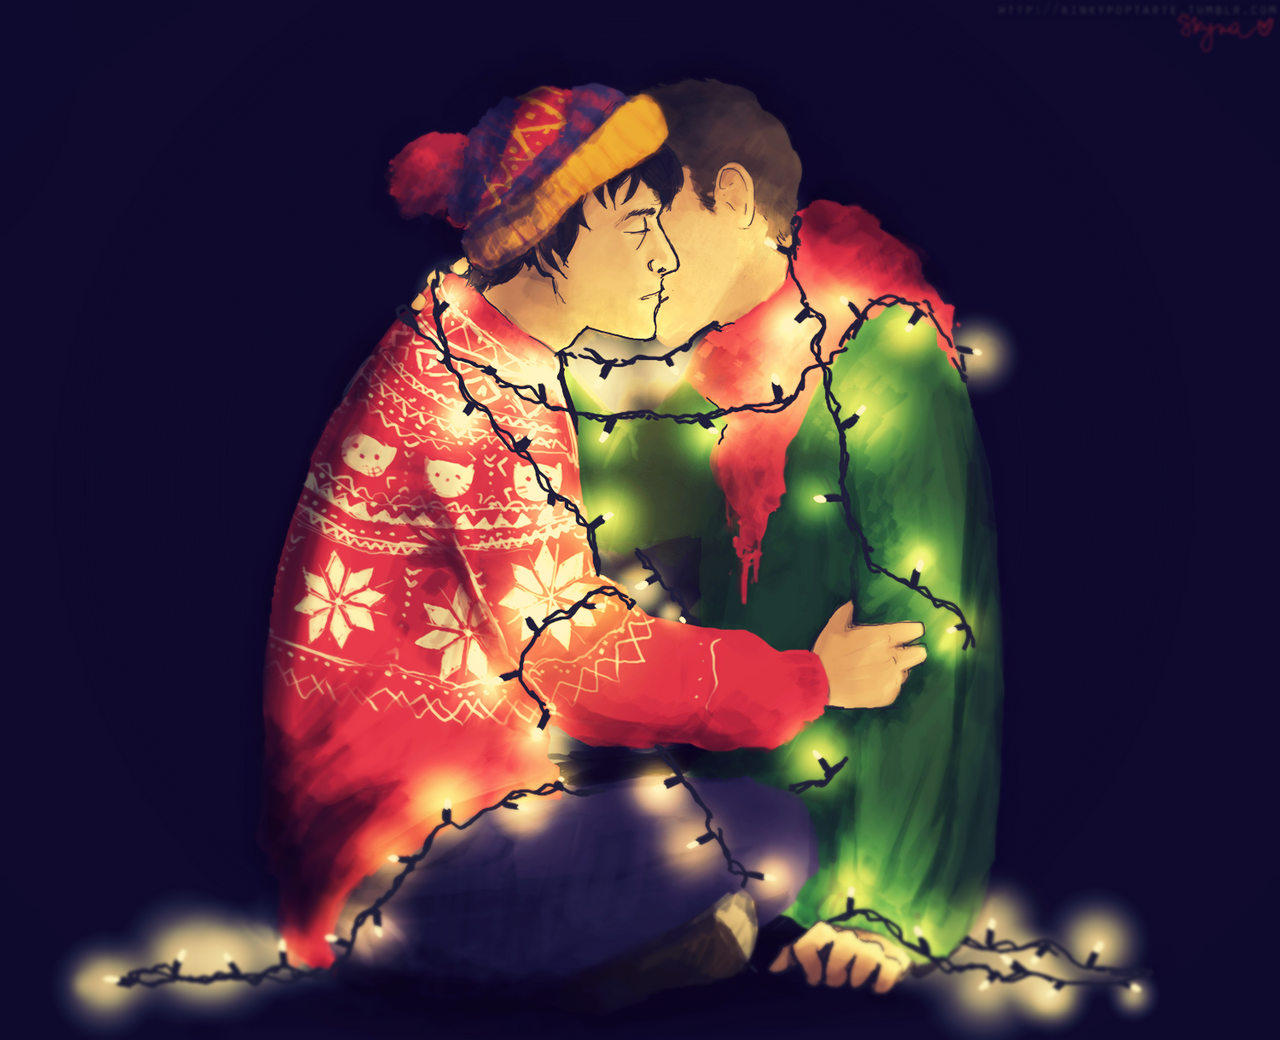 Those christmas lights by skyna on deviantart